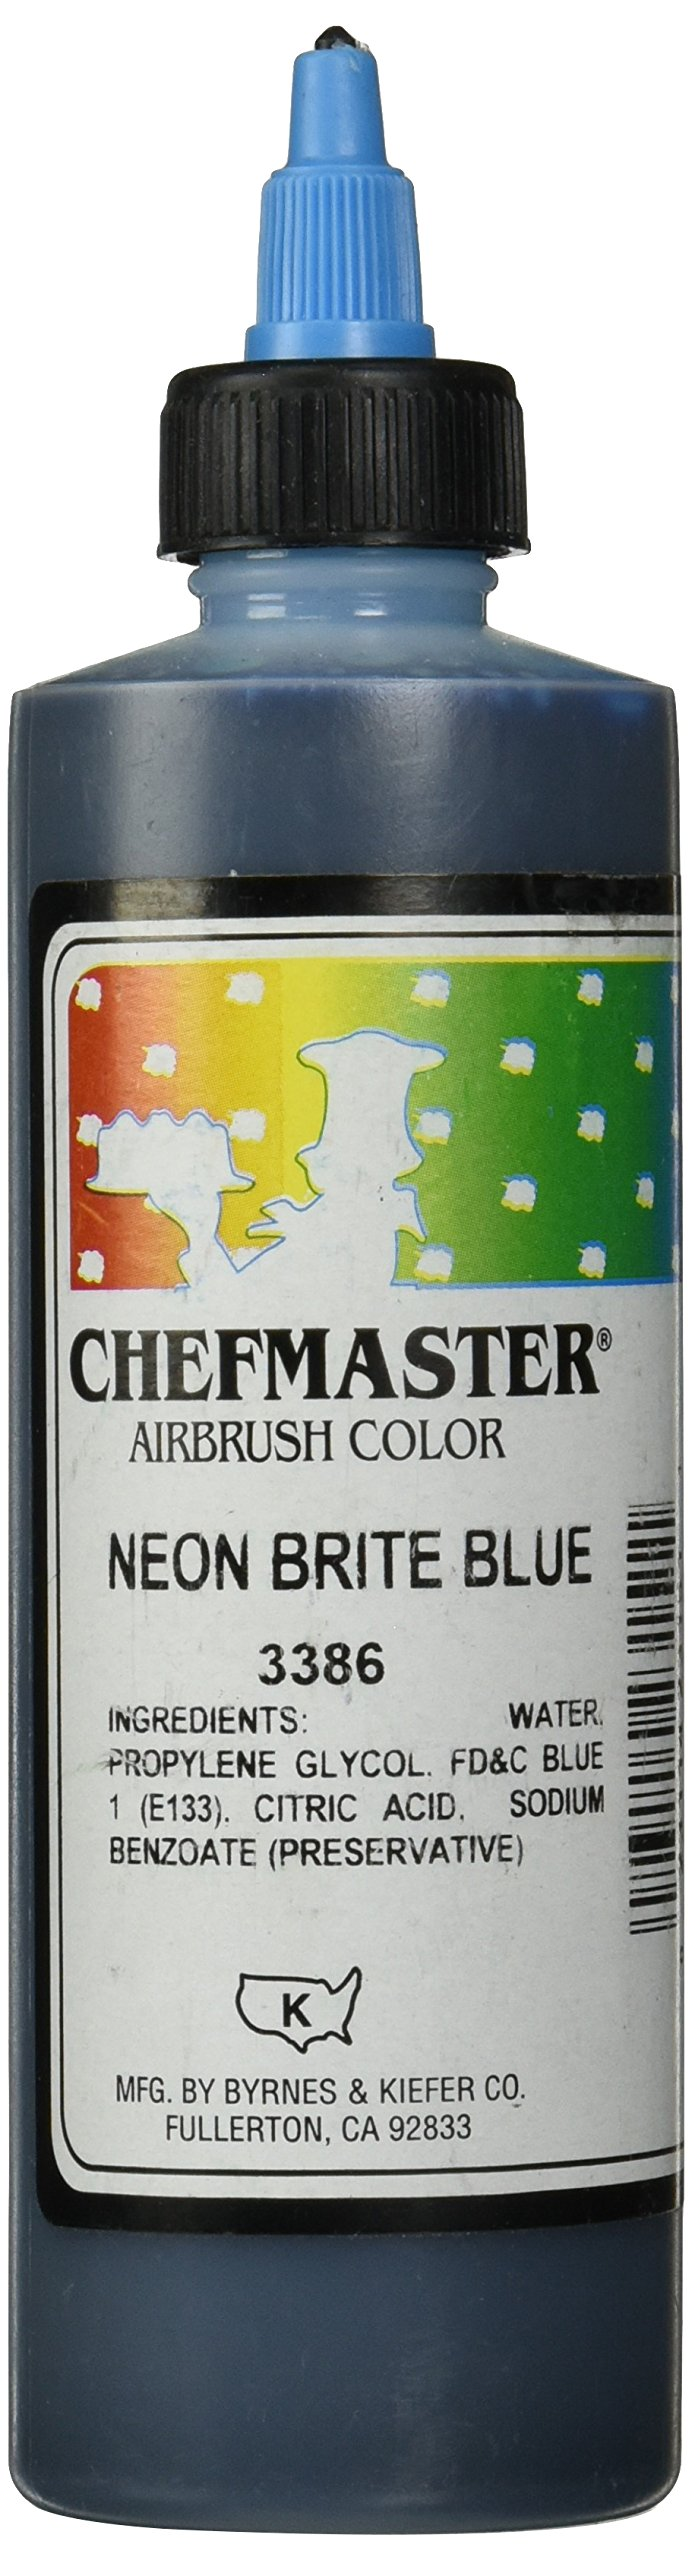 Chefmaster Airbrush Spray Food Color, 9-Ounce, Neon Brite Blue